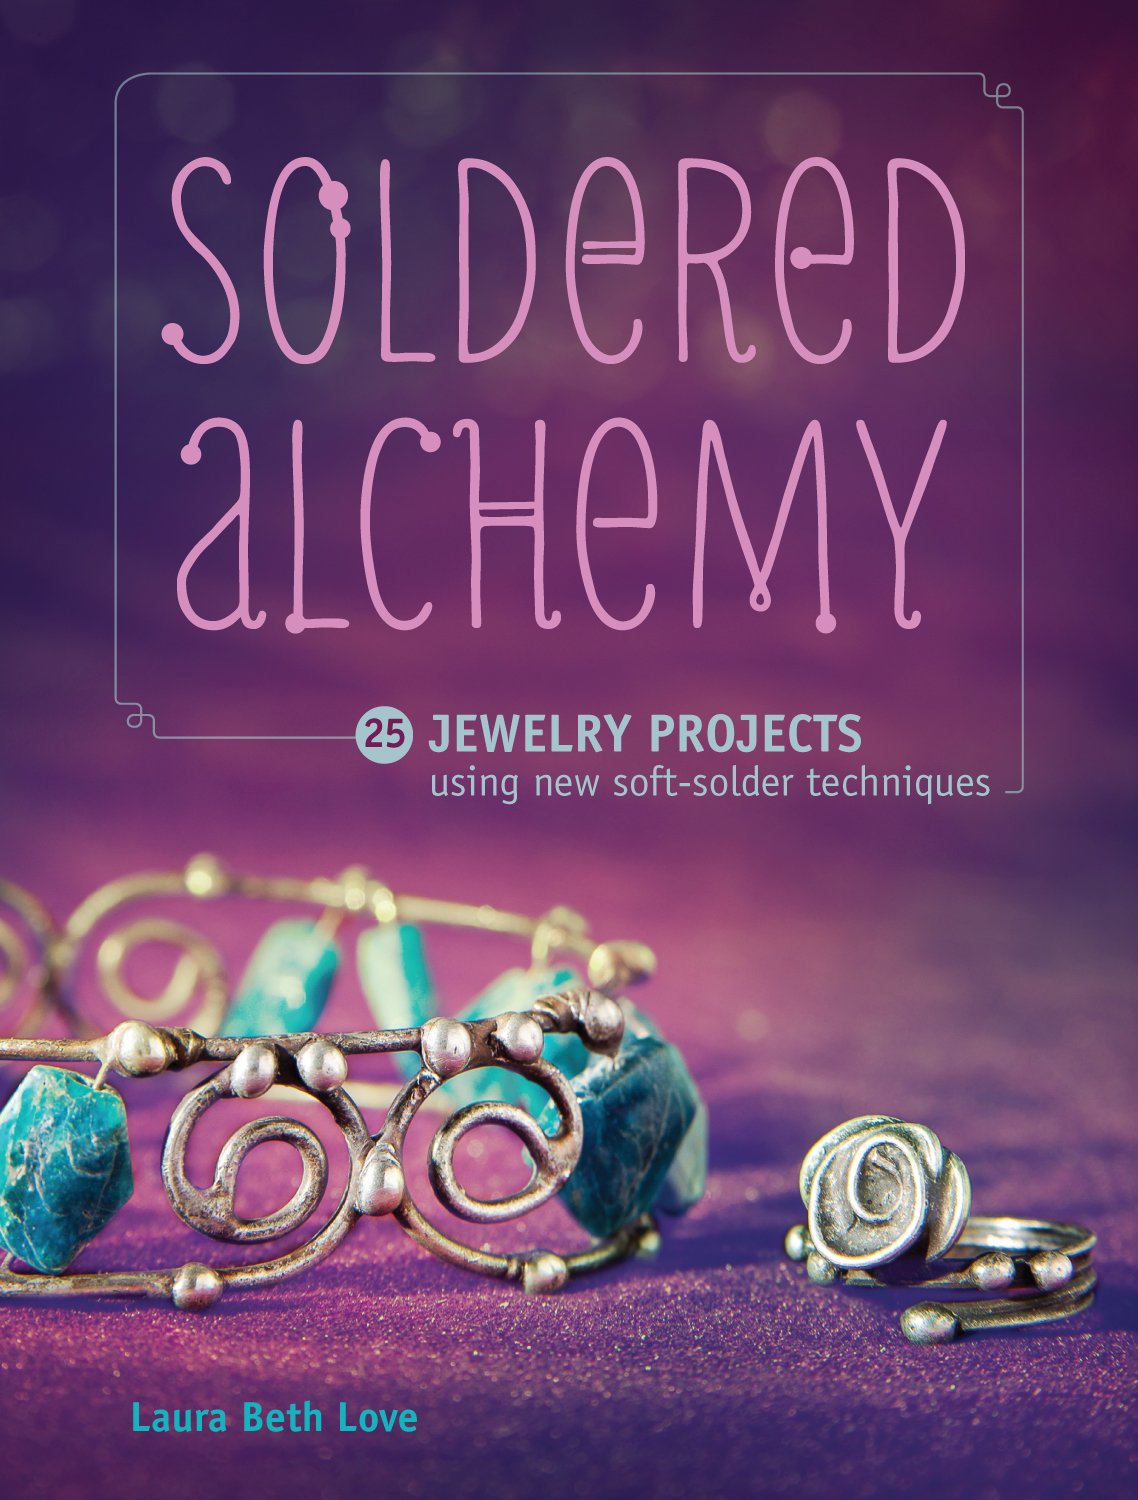 Soldered Alchemy: 24 Jewelry Projects Using New Soft-Solder Techniques